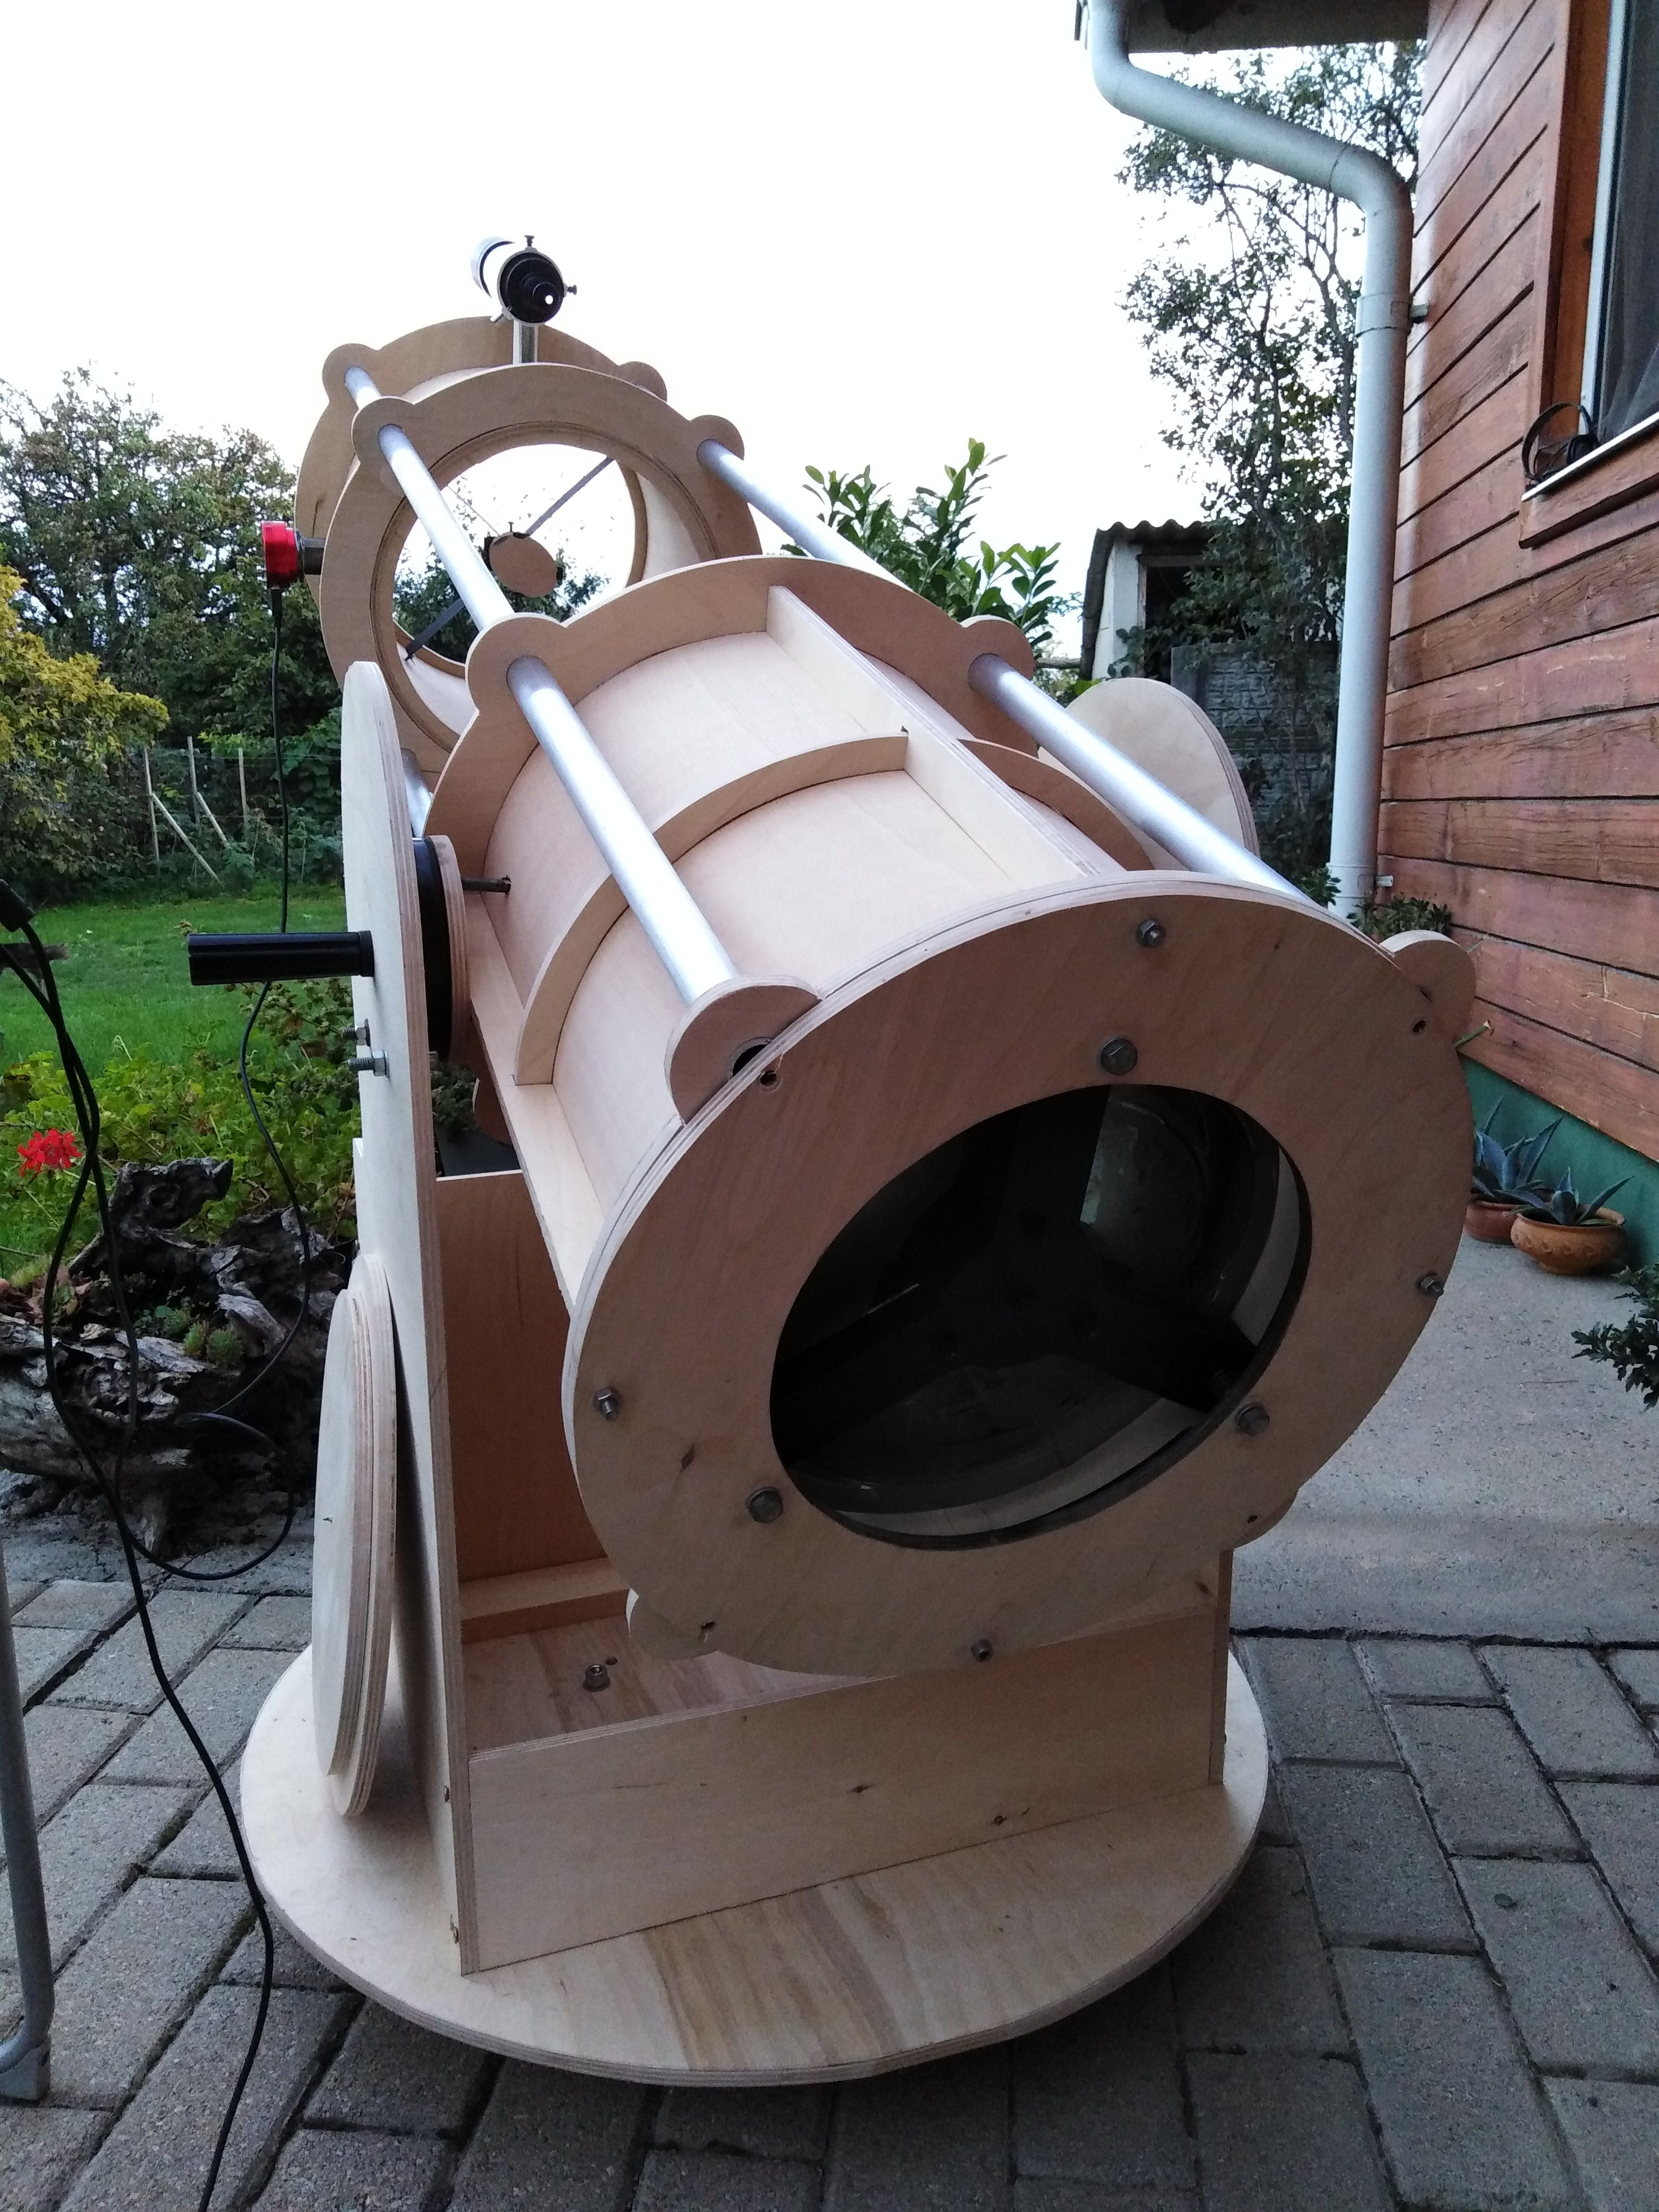 homemade dobsonian telescope with wood :)